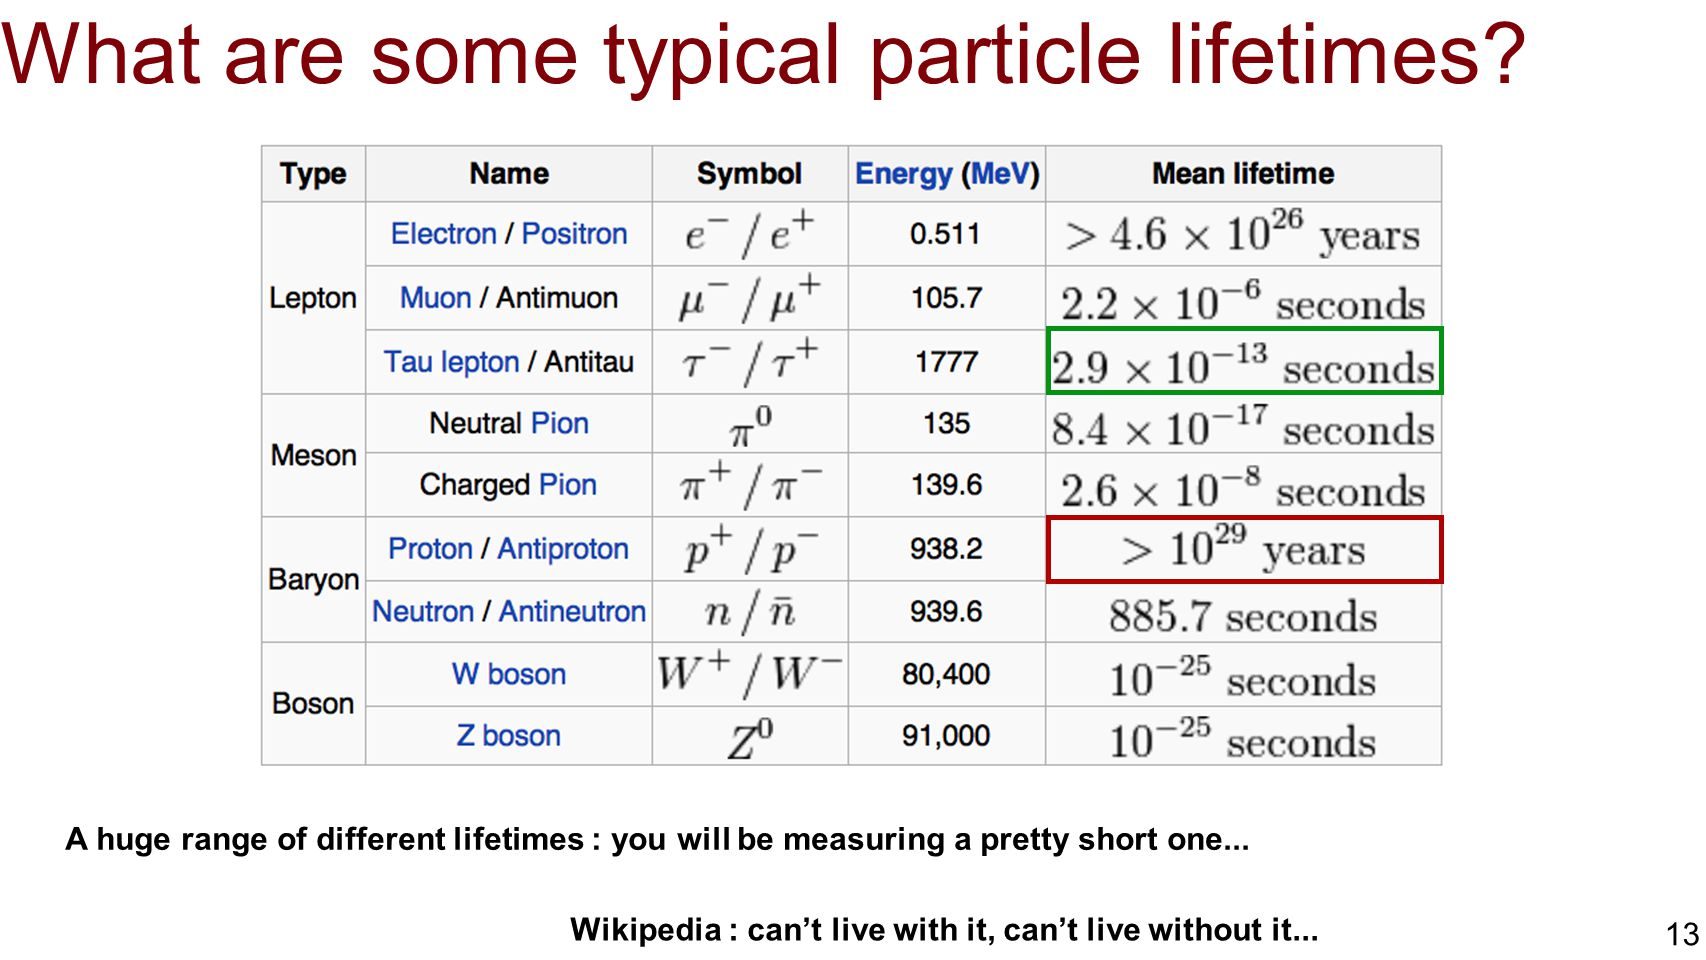 What are some typical particle lifetimes